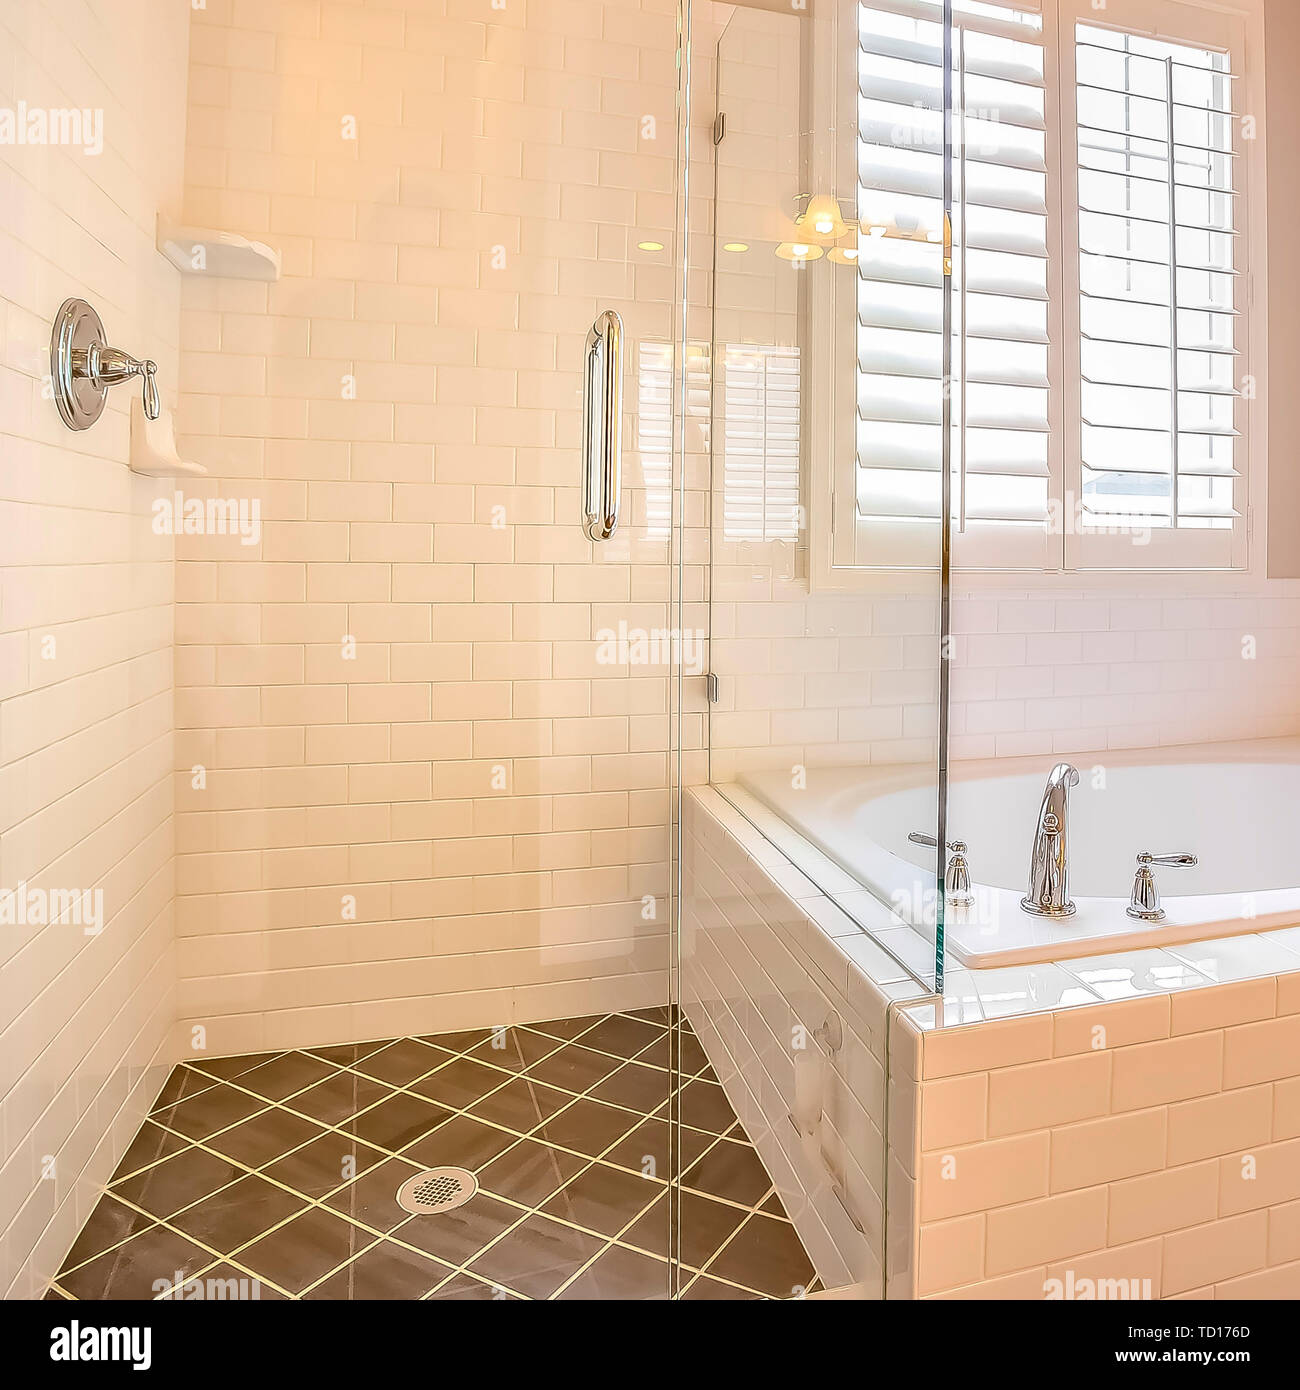 Square Built In Bathtub And Shower Stall With Glass Door